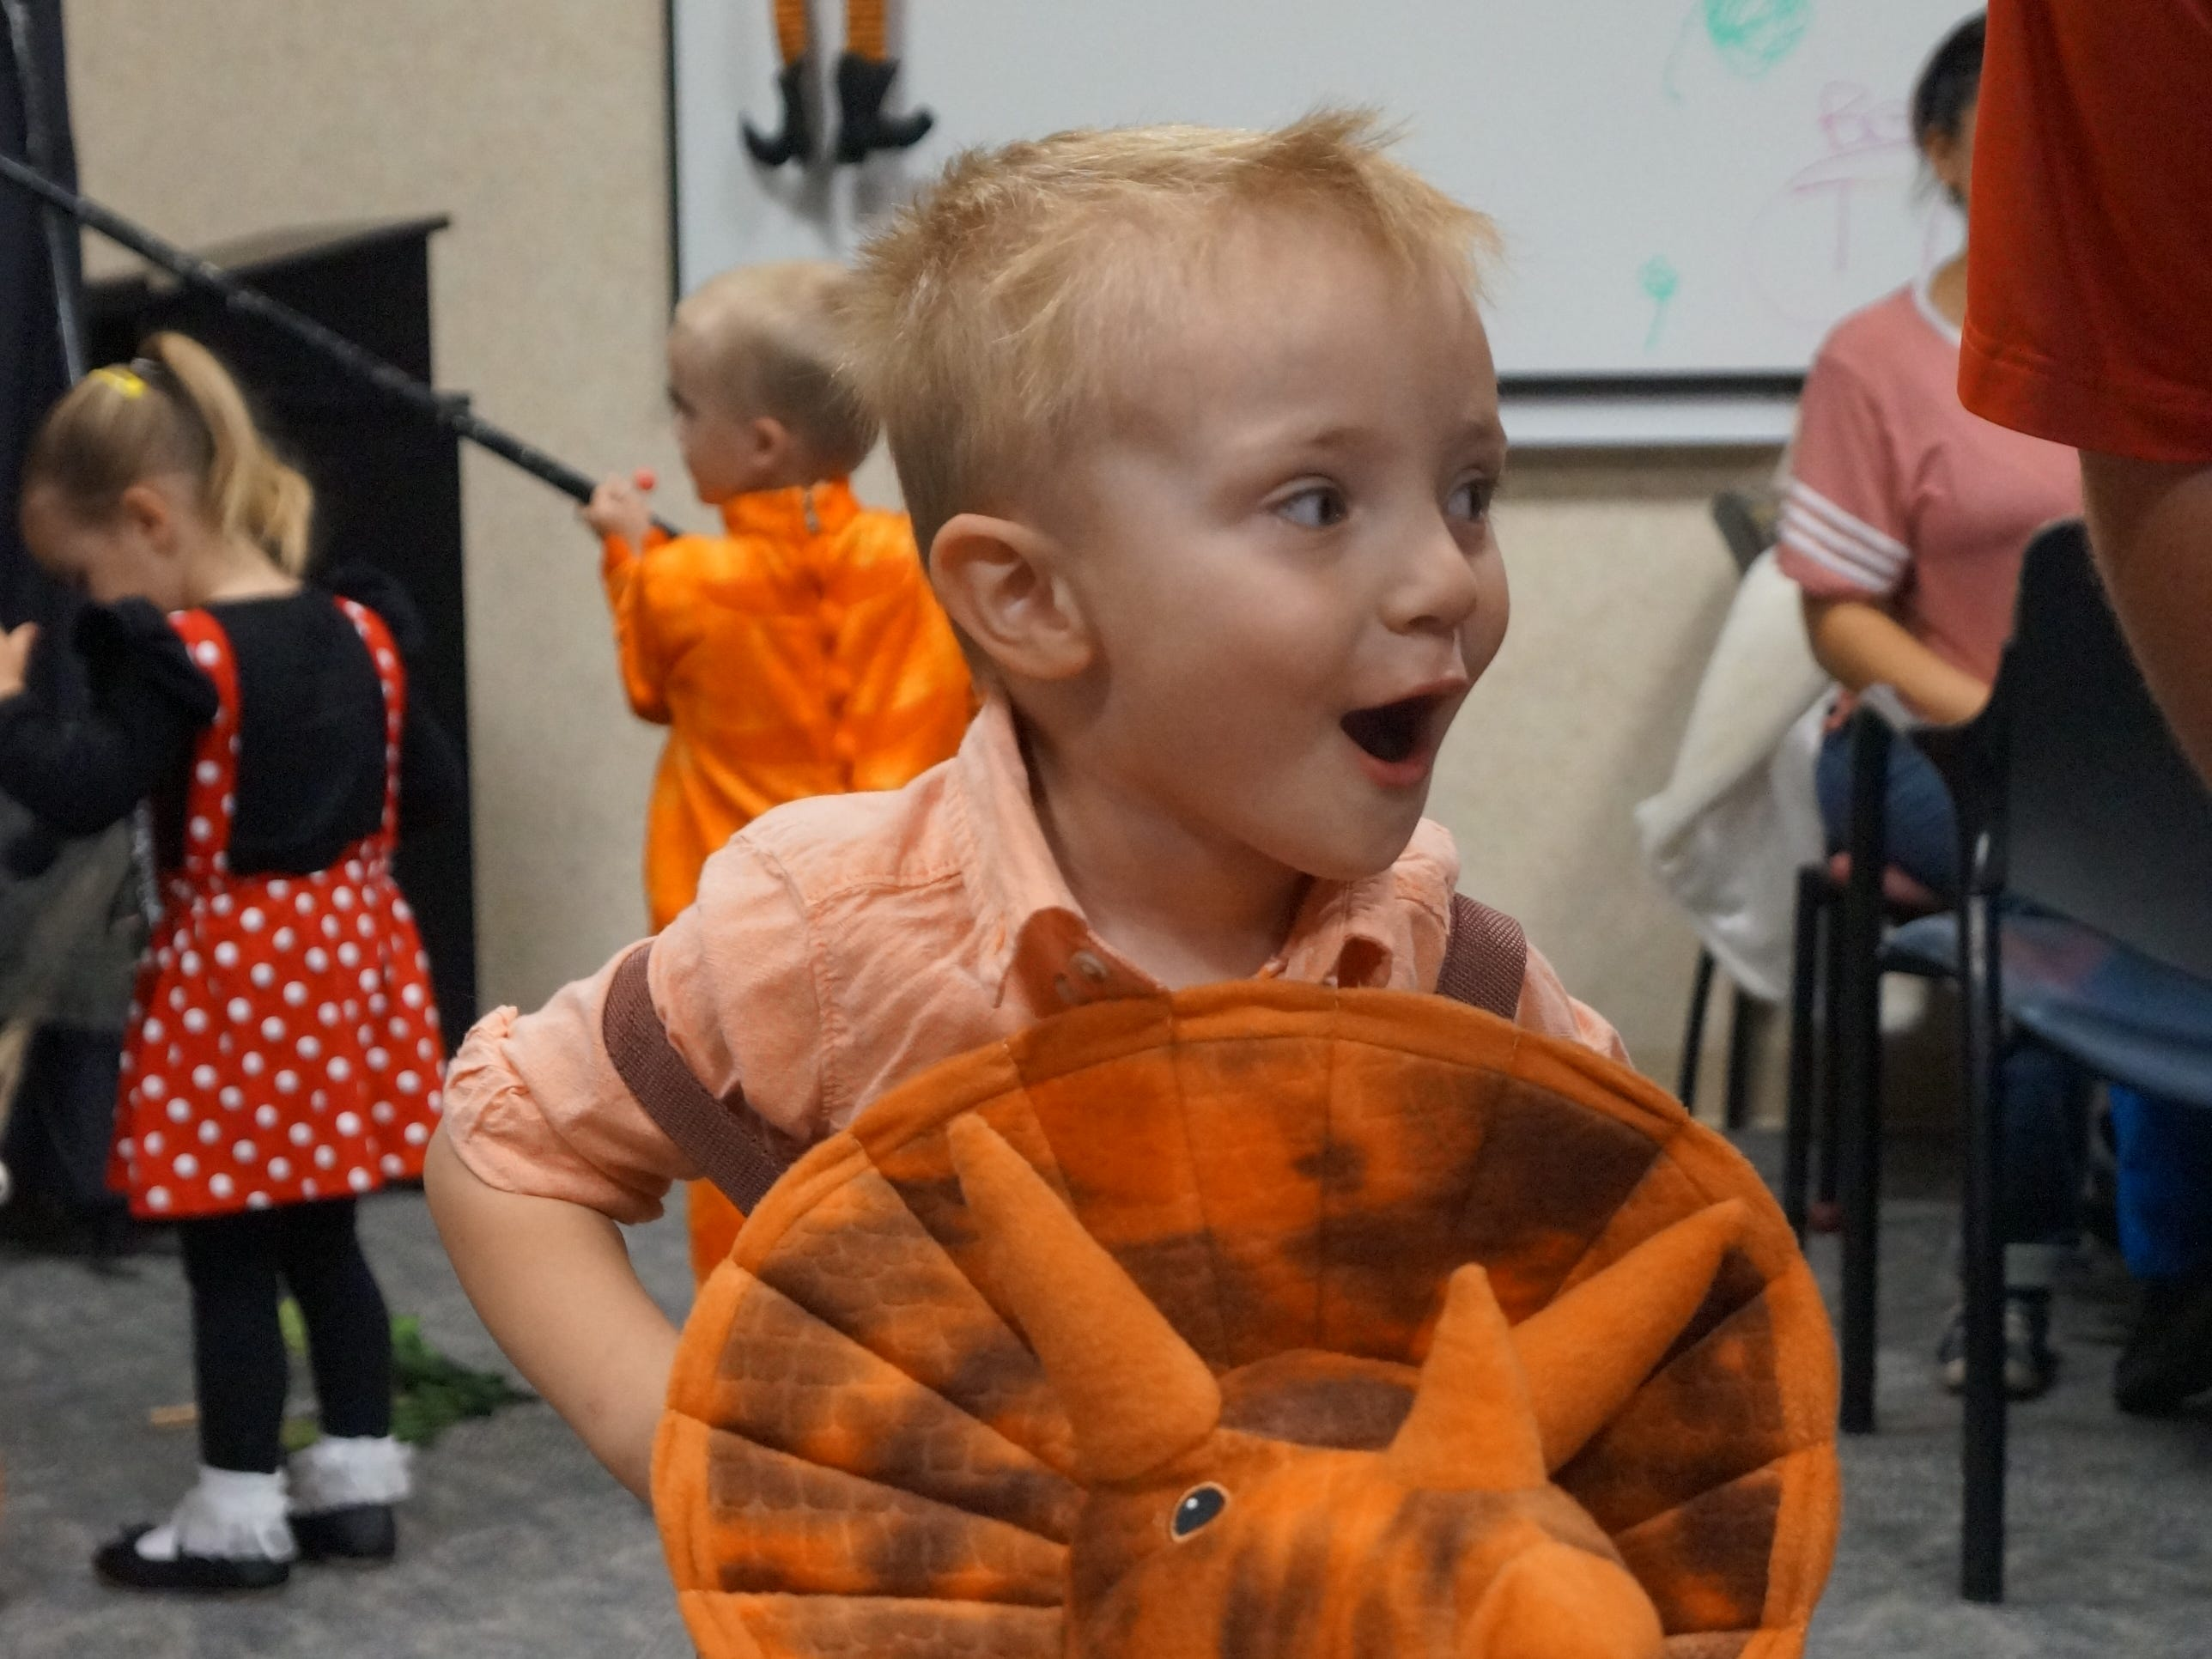 Nolan Wilson plays during the NICU Reunion Carnival at Memorial Medical Center. The hospital was host to a reunion of children who had been helped by the hospital's neonatal intensive care unit. Children came dressed in costume for the second NICU Reunion Carnival, held Tuesday, Oct. 30. The children, parents and hospital staff enjoyed food and games for the afternoon.